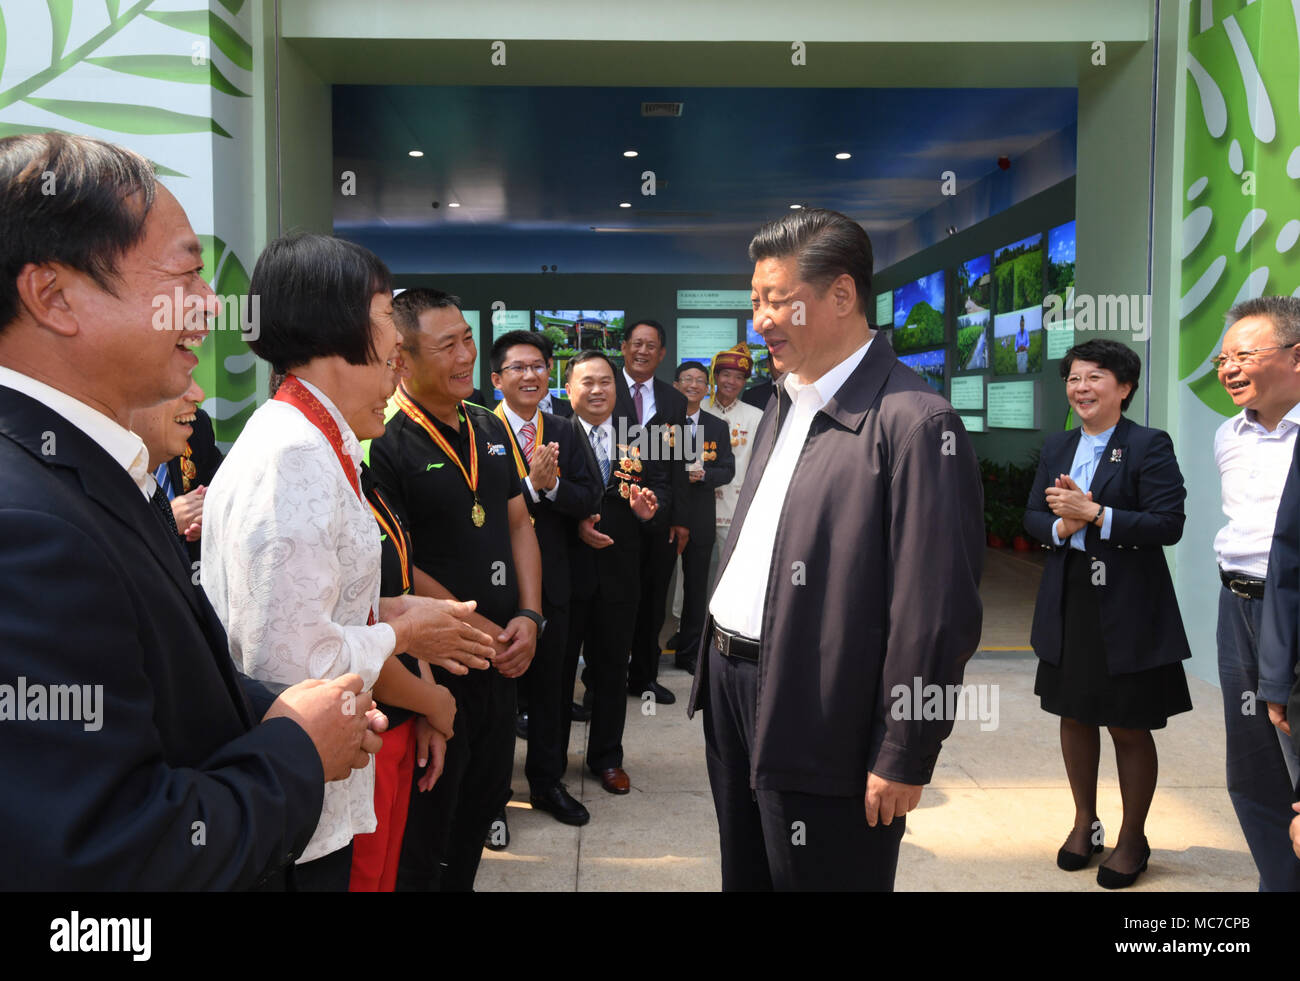 Haikou, China's Hainan Province. 13th Apr, 2018. Chinese President Xi Jinping, also general secretary of the Communist Party of China Central Committee and chairman of the Central Military Commission, talks with model workers and representatives of different occupations at a plaza of the Hainan Museum in Haikou, south China's Hainan Province, April 13, 2018. Xi made an inspection tour in Hainan from Wednesday to Friday. Credit: Li Xueren/Xinhua/Alamy Live News Stock Photo